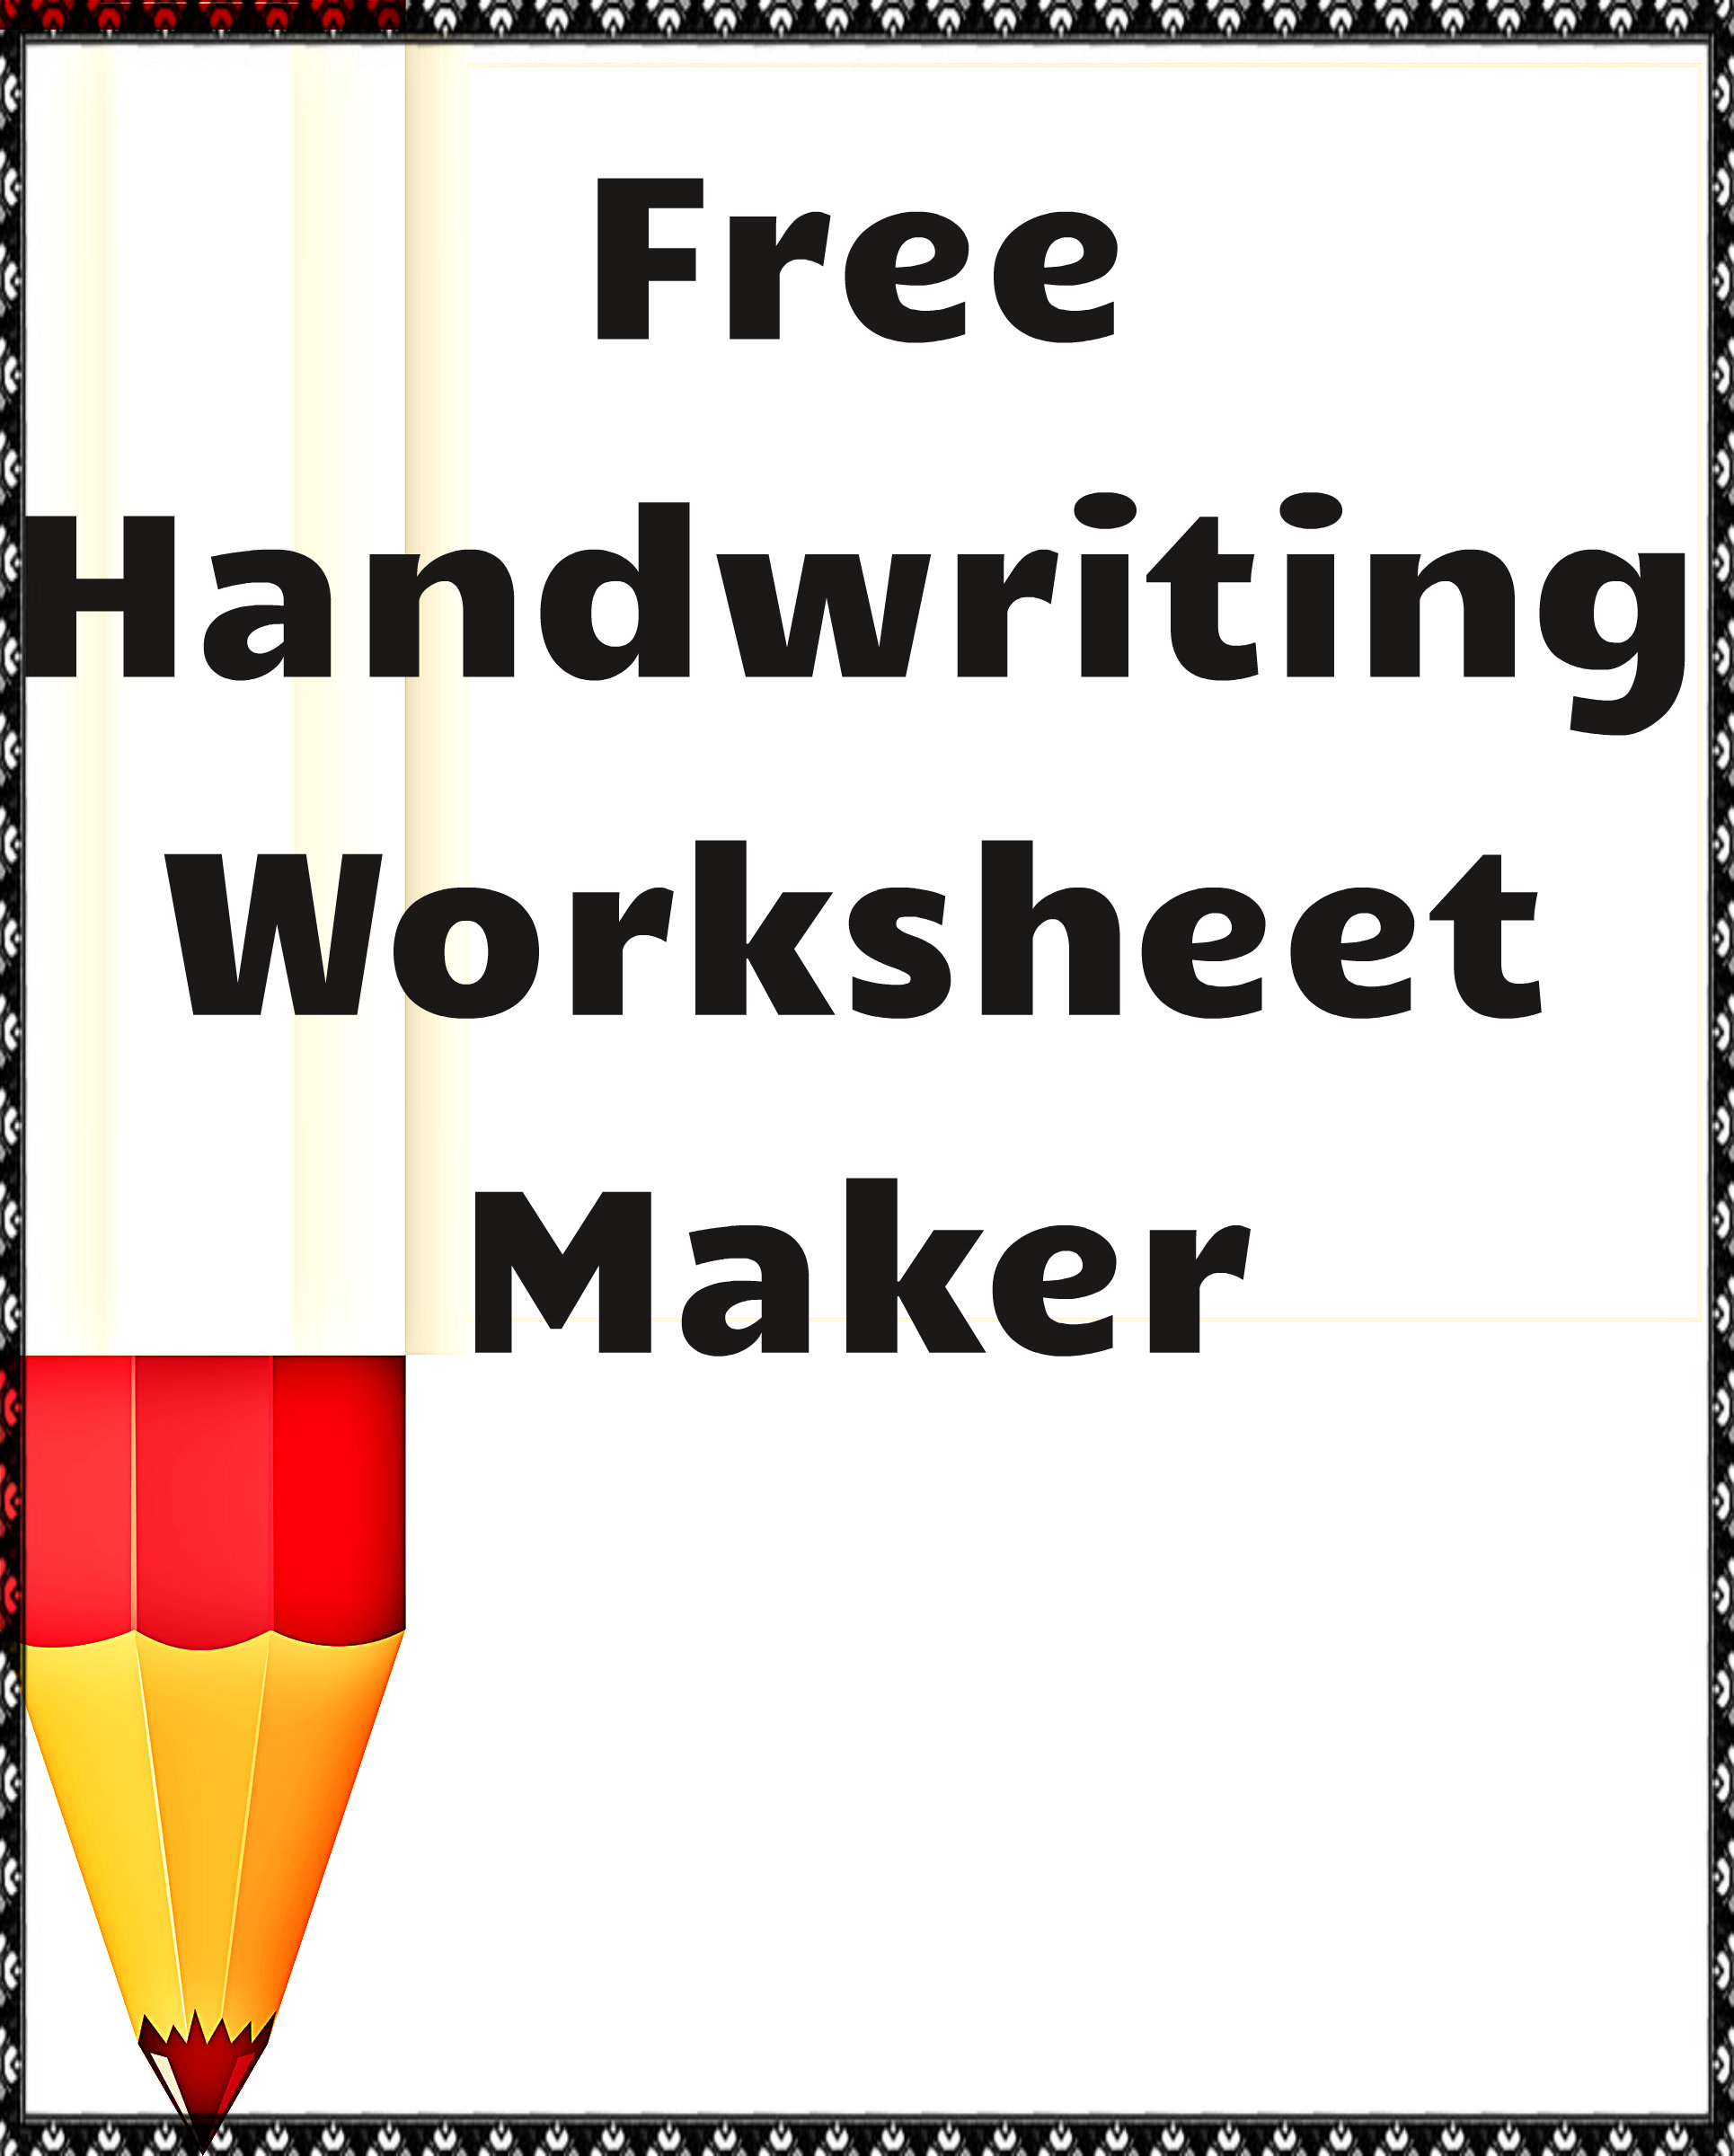 Worksheets Kindergarten Handwriting Worksheet Maker create a tracing worksheet basic handwriting for kids manuscript vocabulary words 17 best ideas about name writing practice on pinterest name